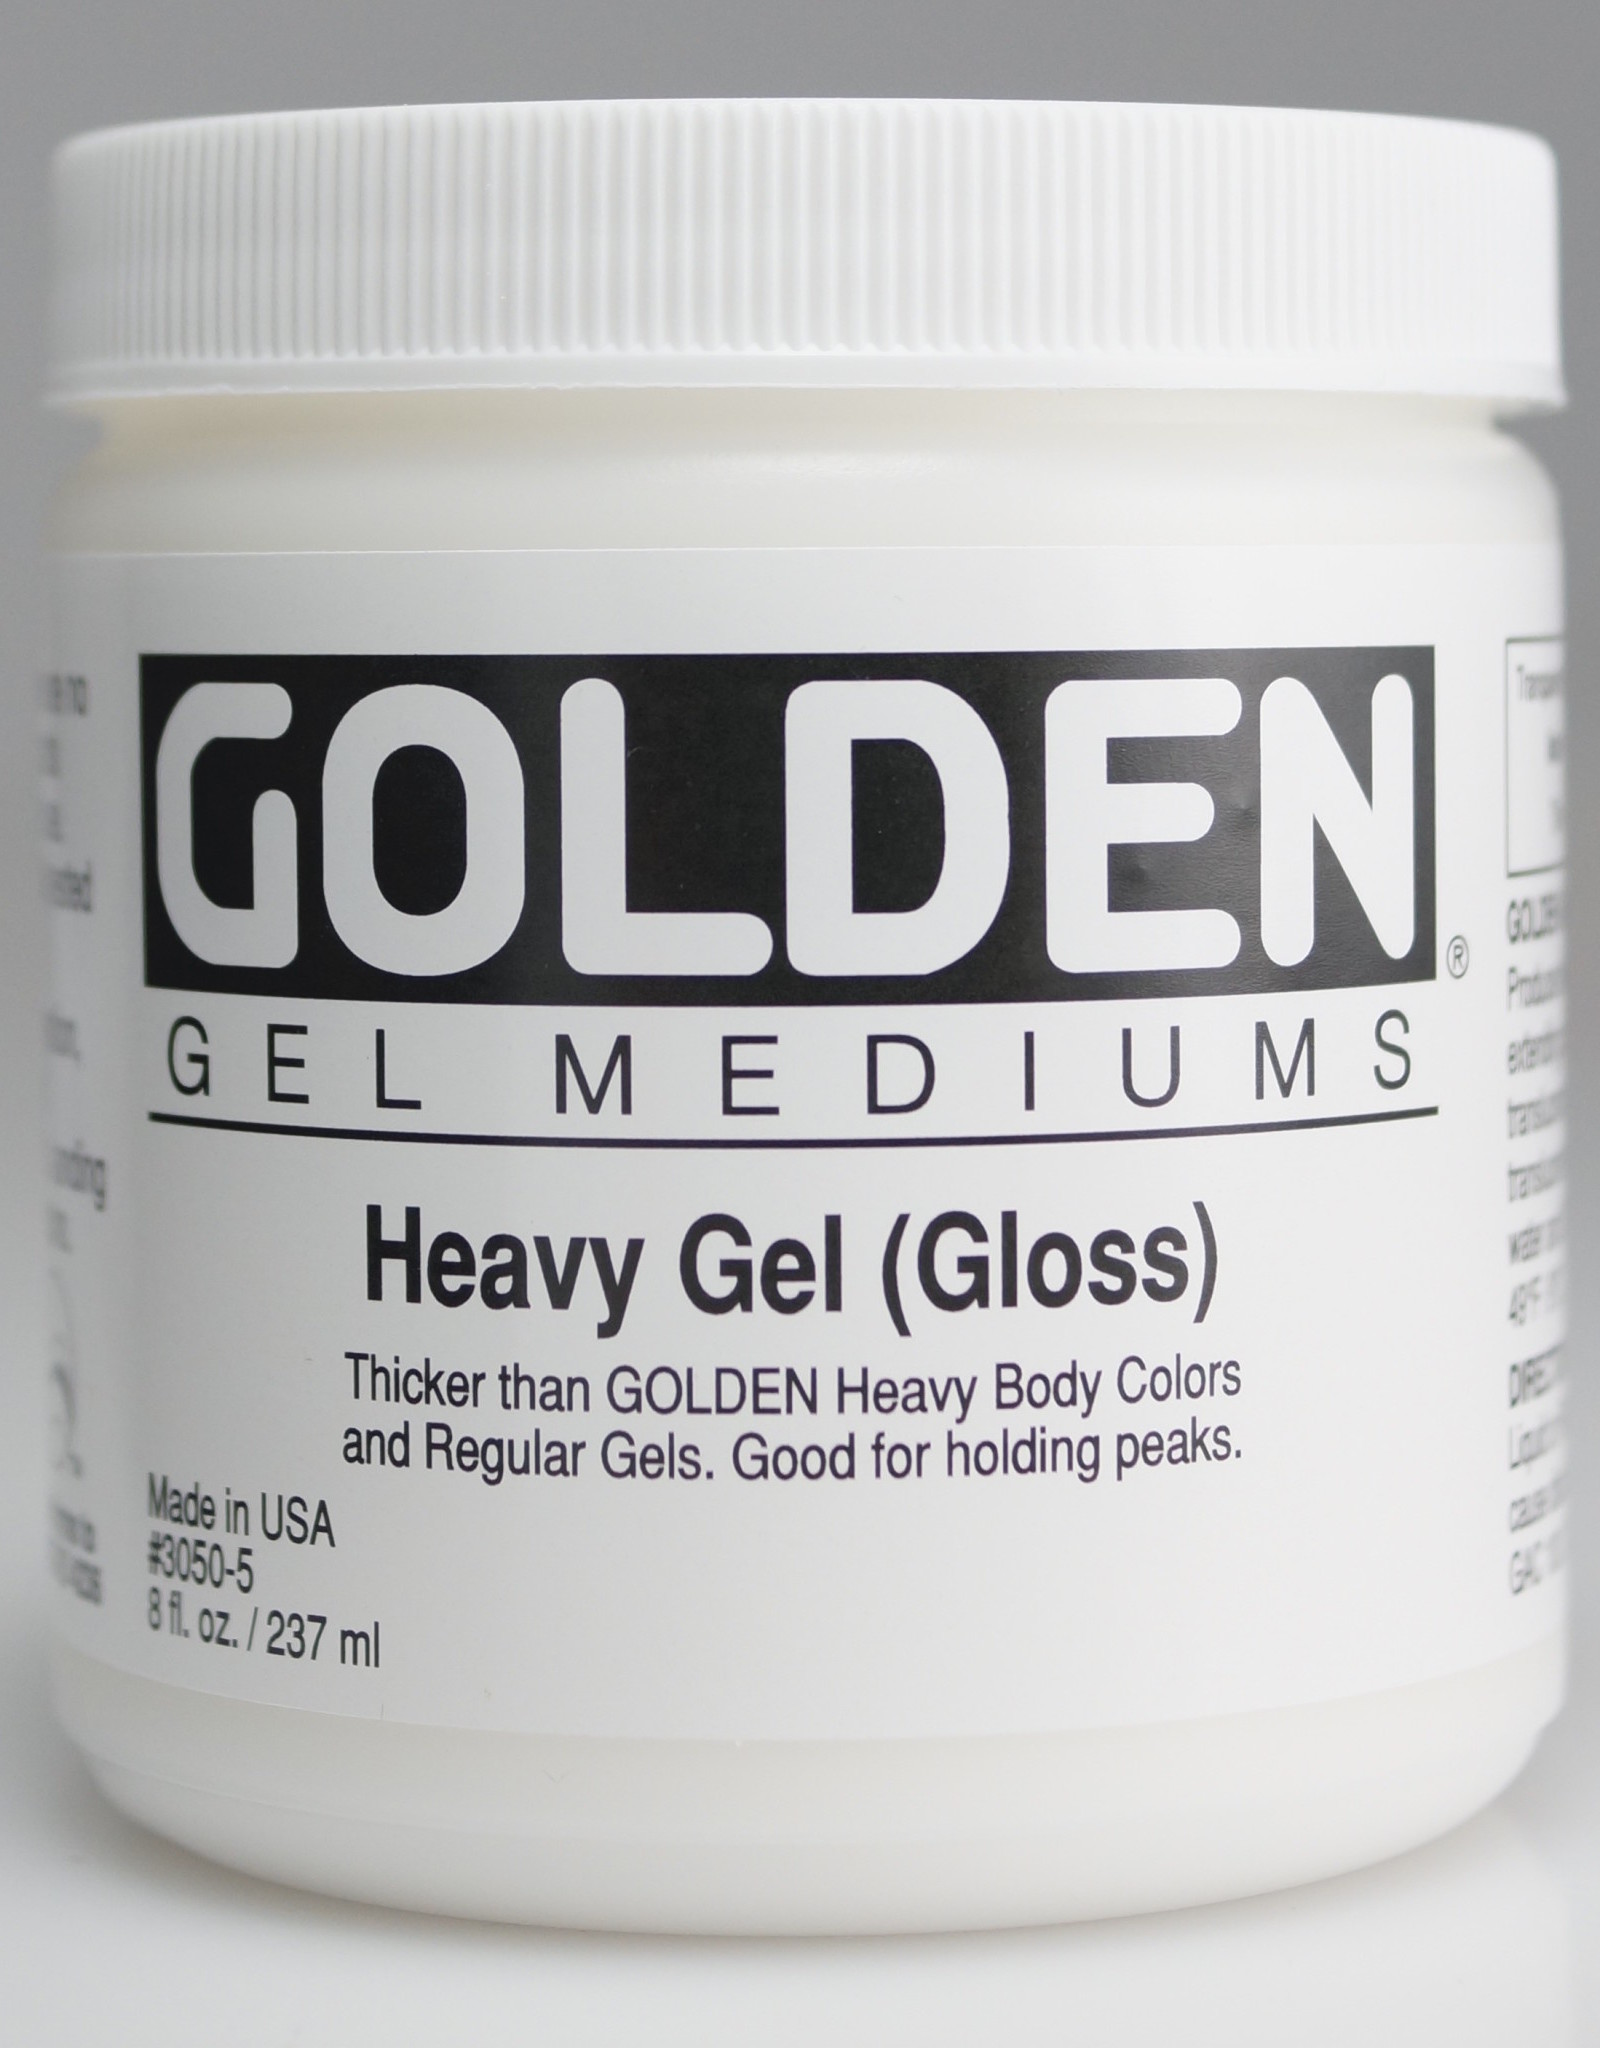 Golden, Heavy Gel Medium, Gloss, 8oz Jar